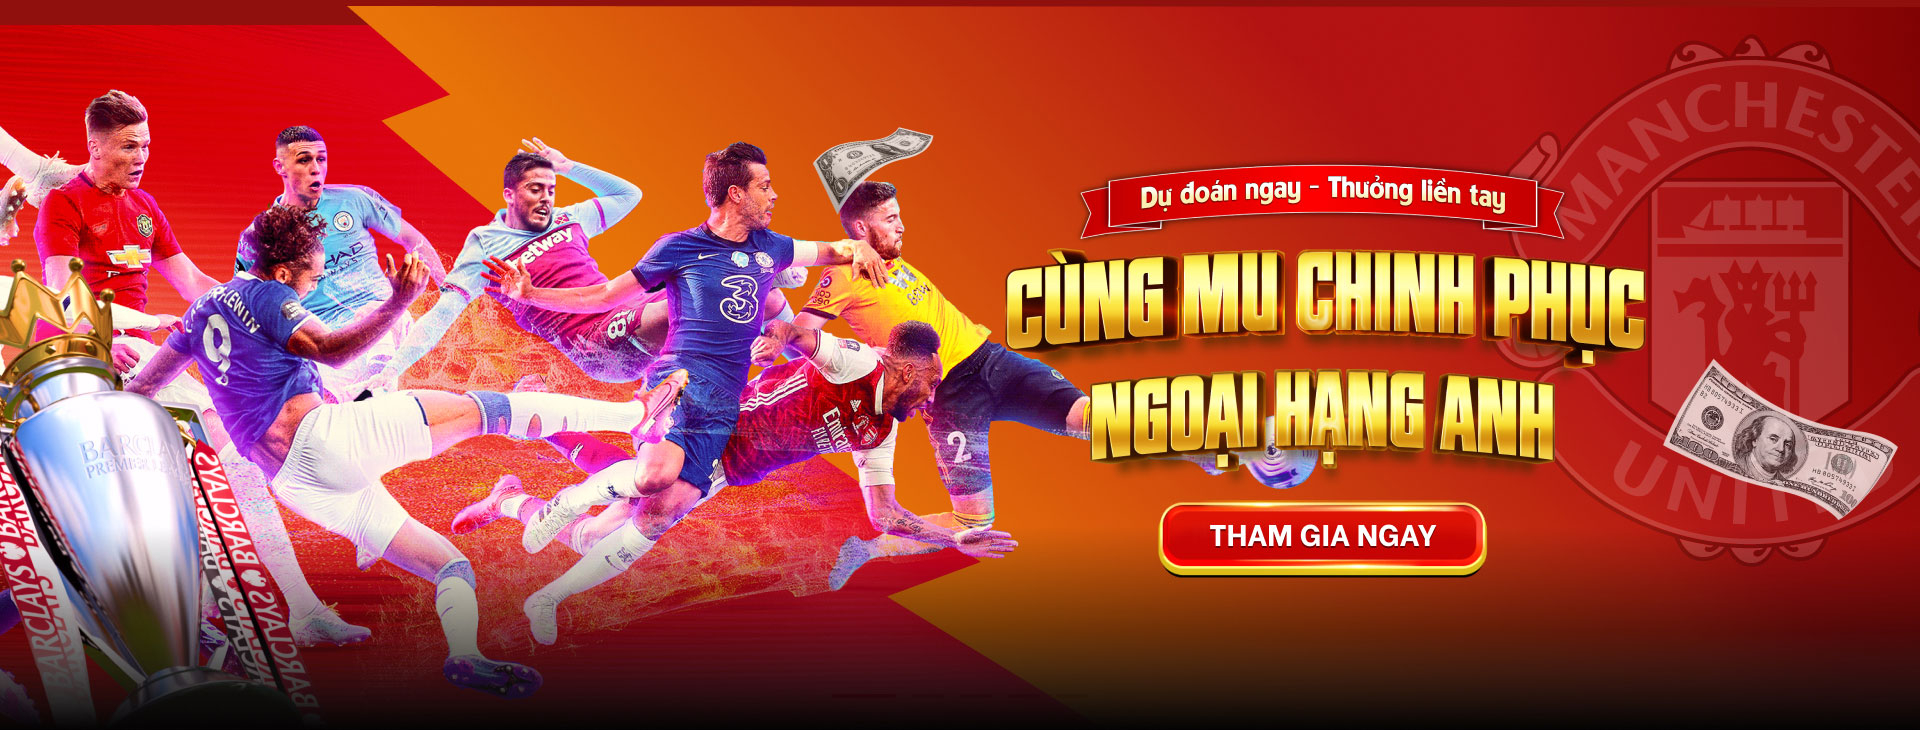 Event Ngoại Hạng Anh